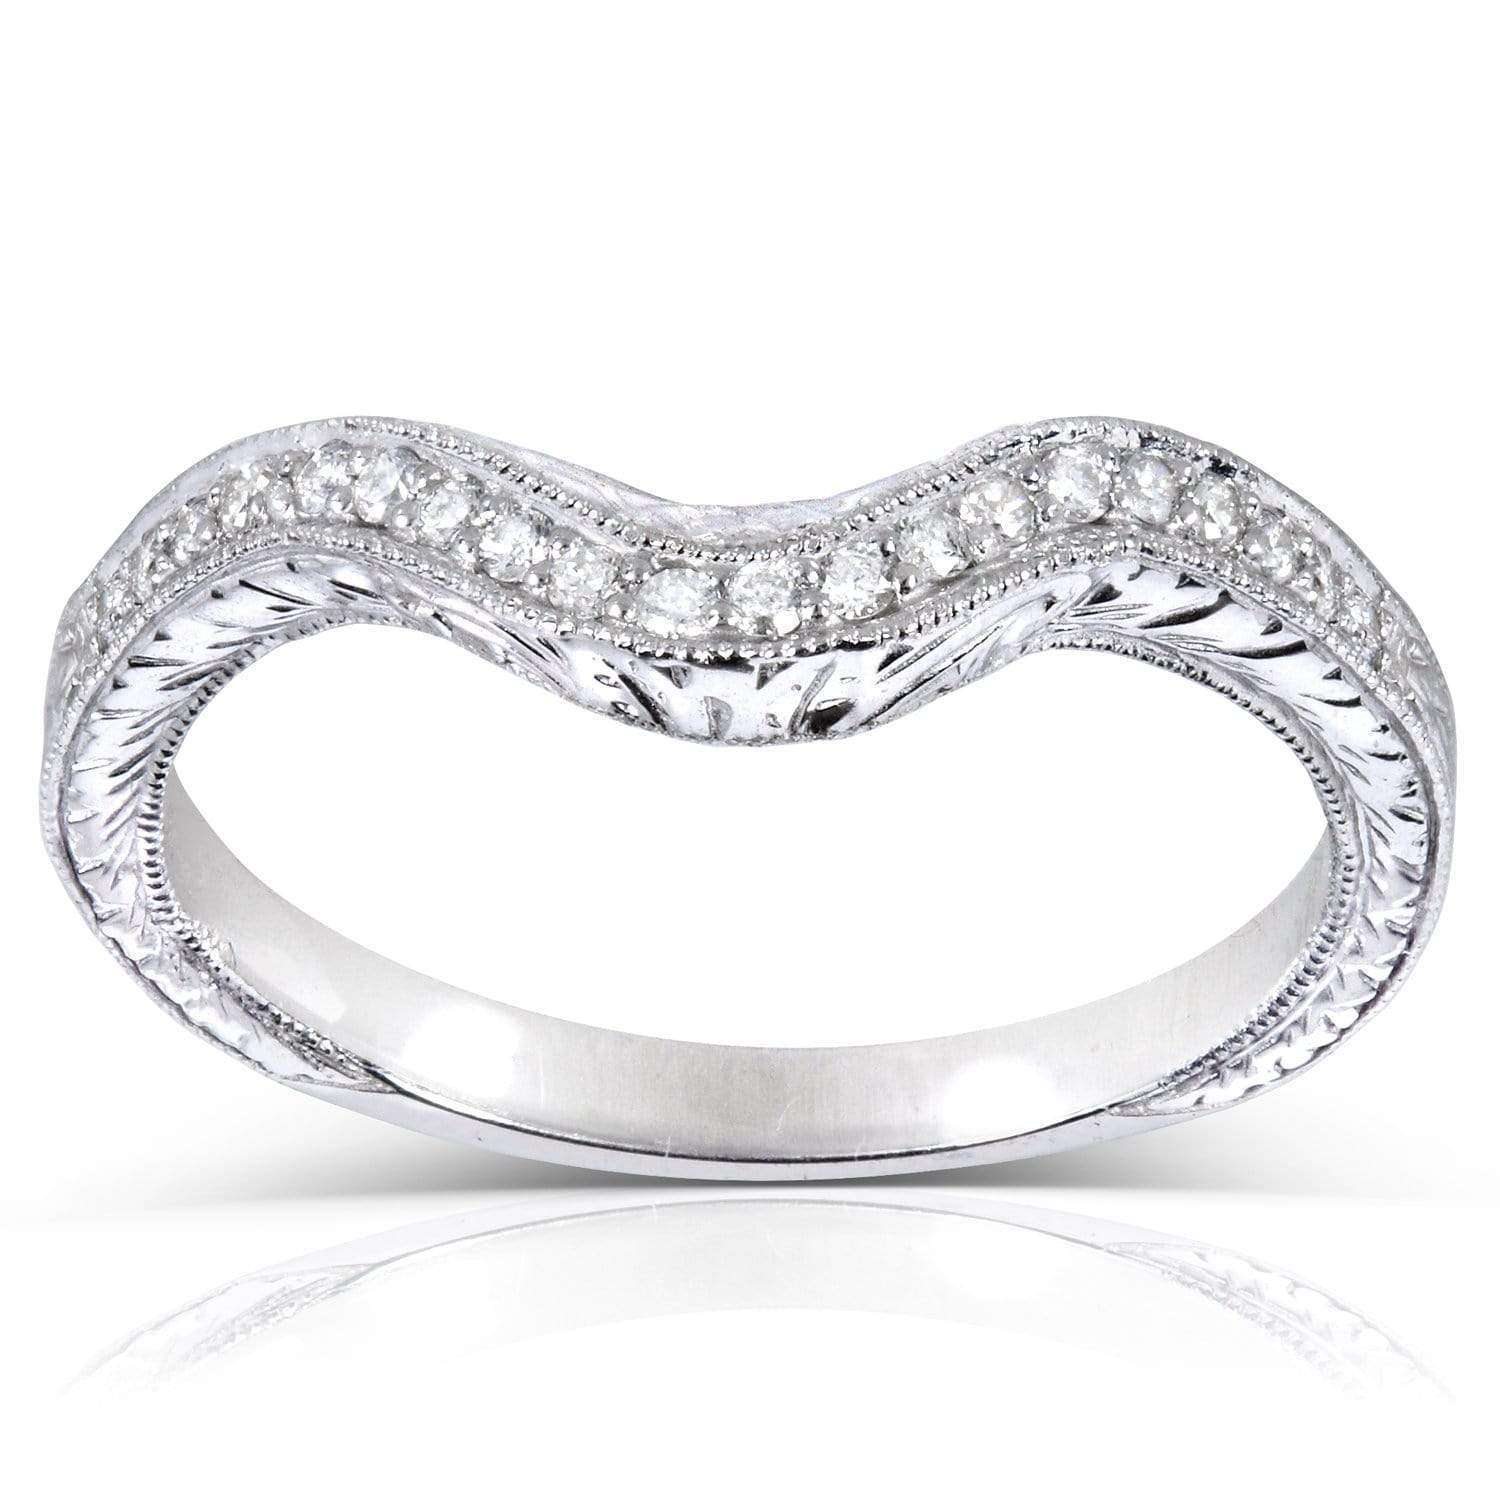 Coupons Contoured Diamond Band 1/10 Carat (ctw) in 14k White Gold (Matching Band to Ring 31044RD-40ENGDM) - 8.5